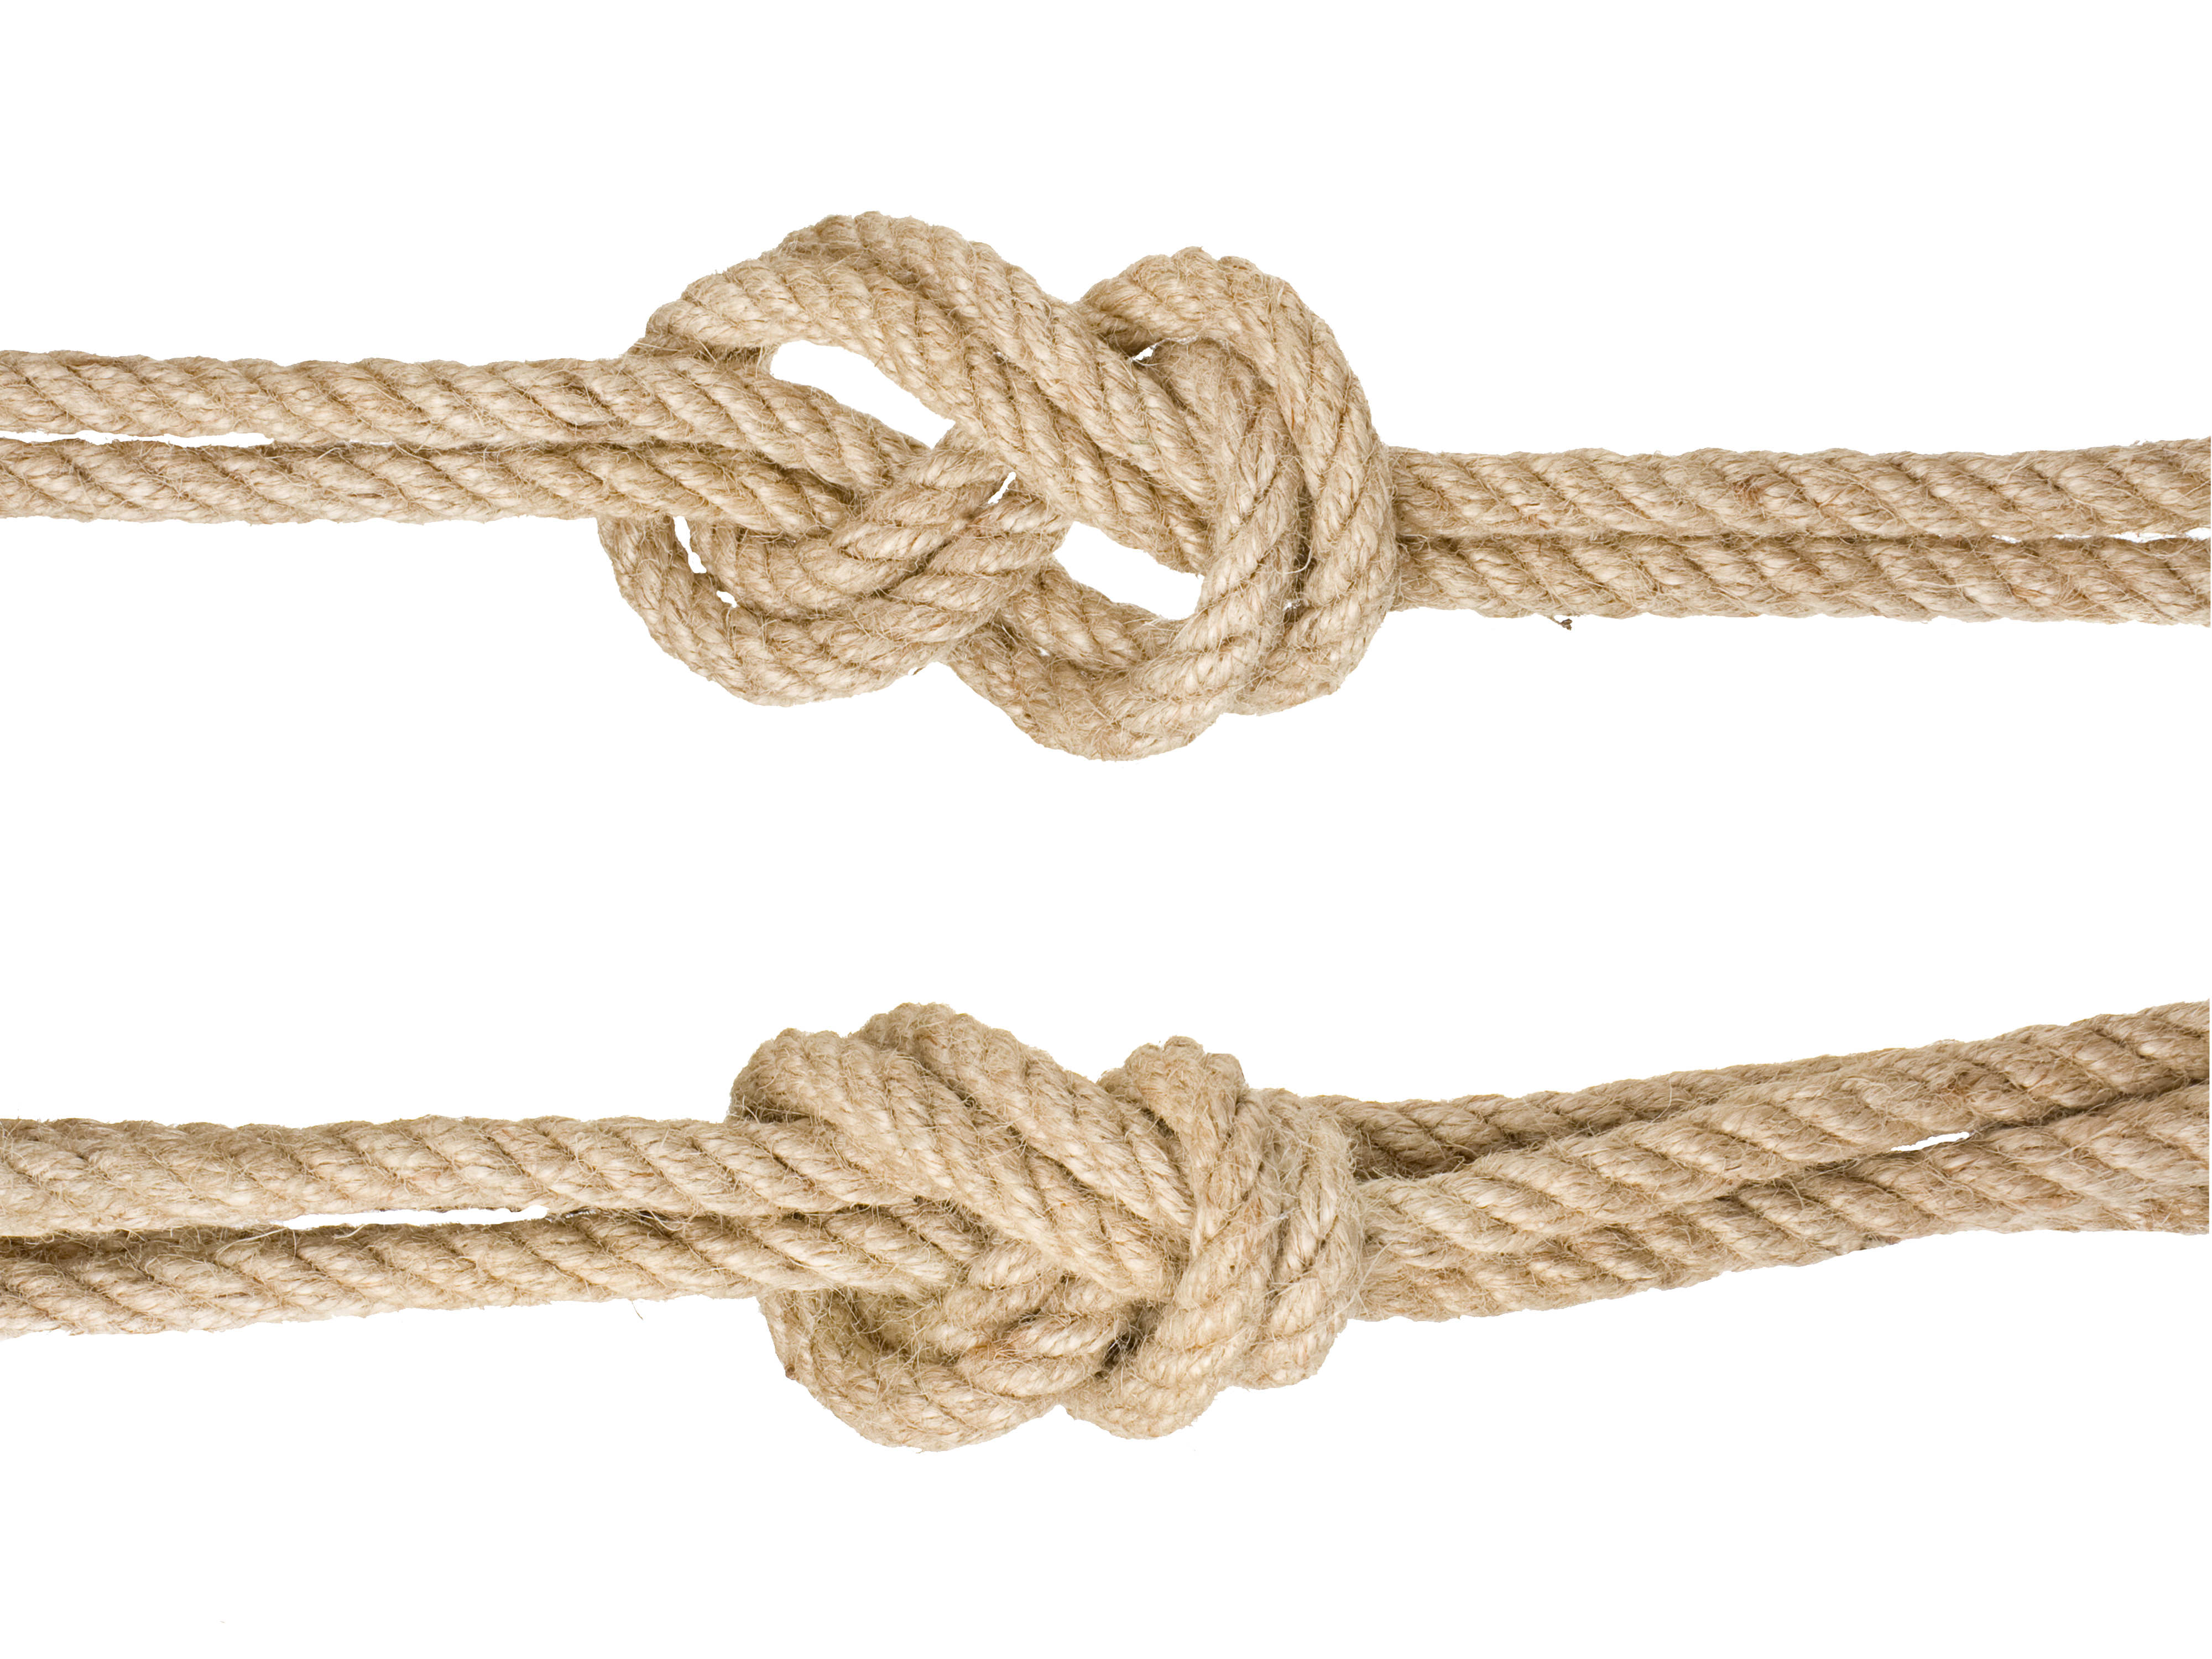 Download Google Knotted Rope Knot Images Hemp HQ PNG Image.